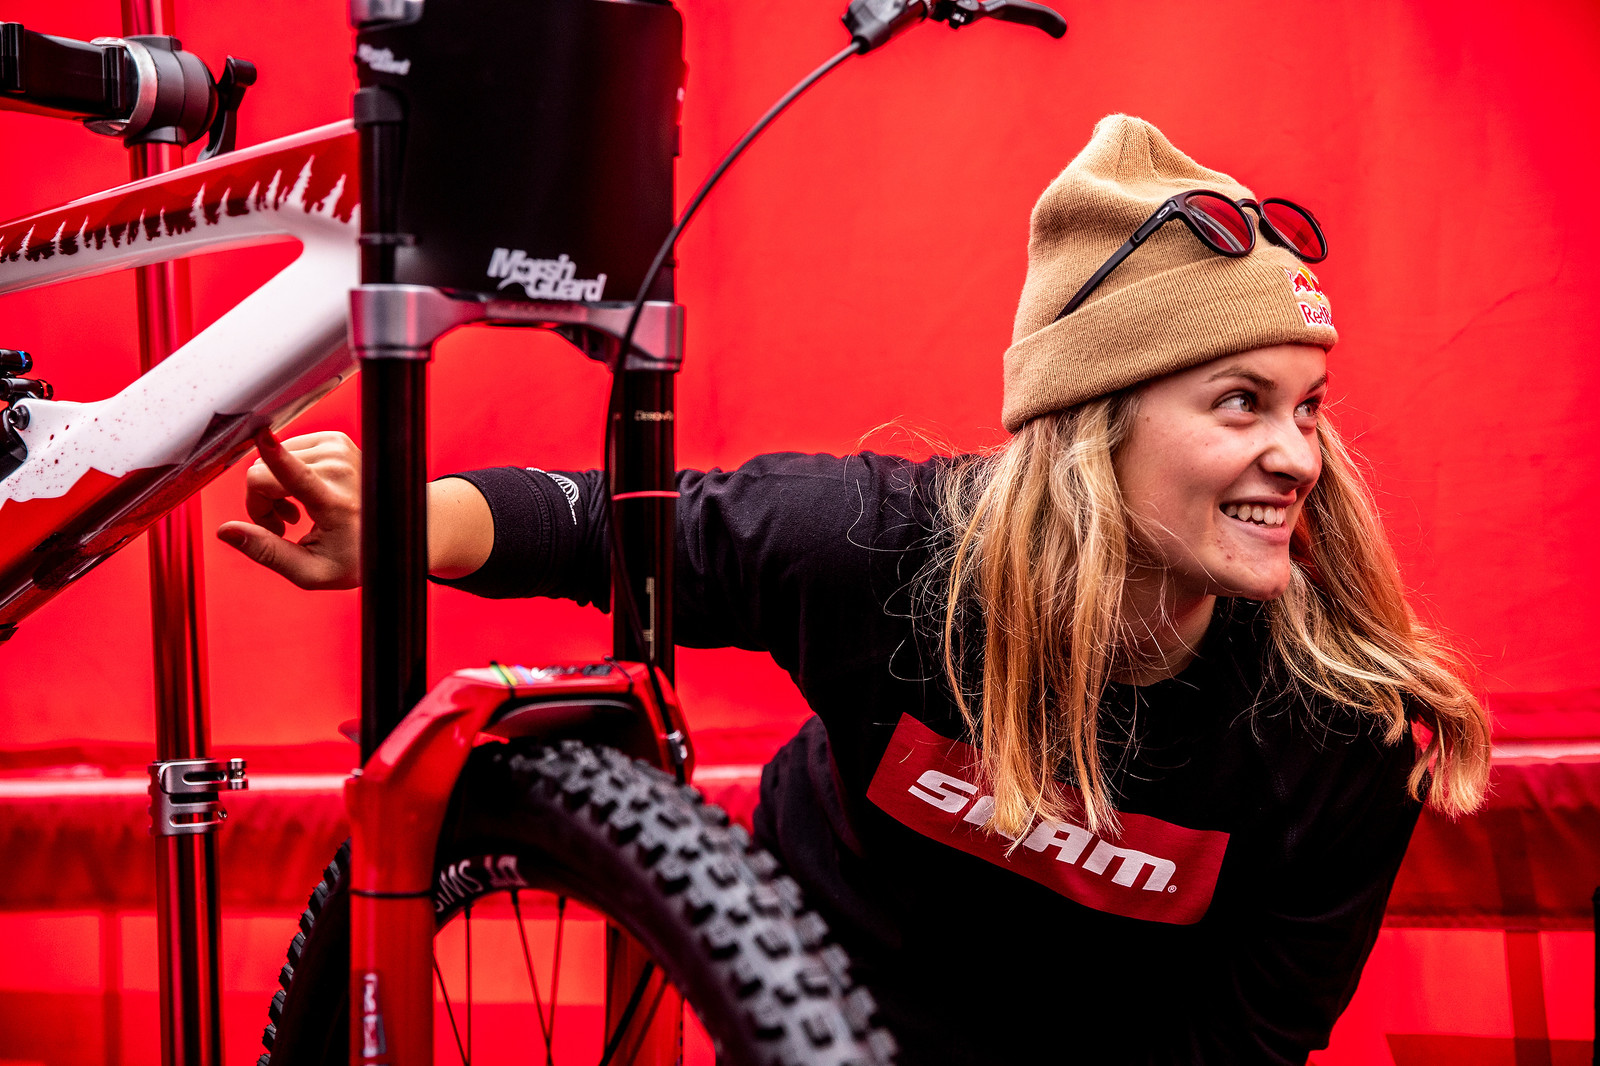 Stoked on the Glitter! - WORLD CHAMPS BIKE - Vali Holl's YT TUES - Mountain Biking Pictures - Vital MTB